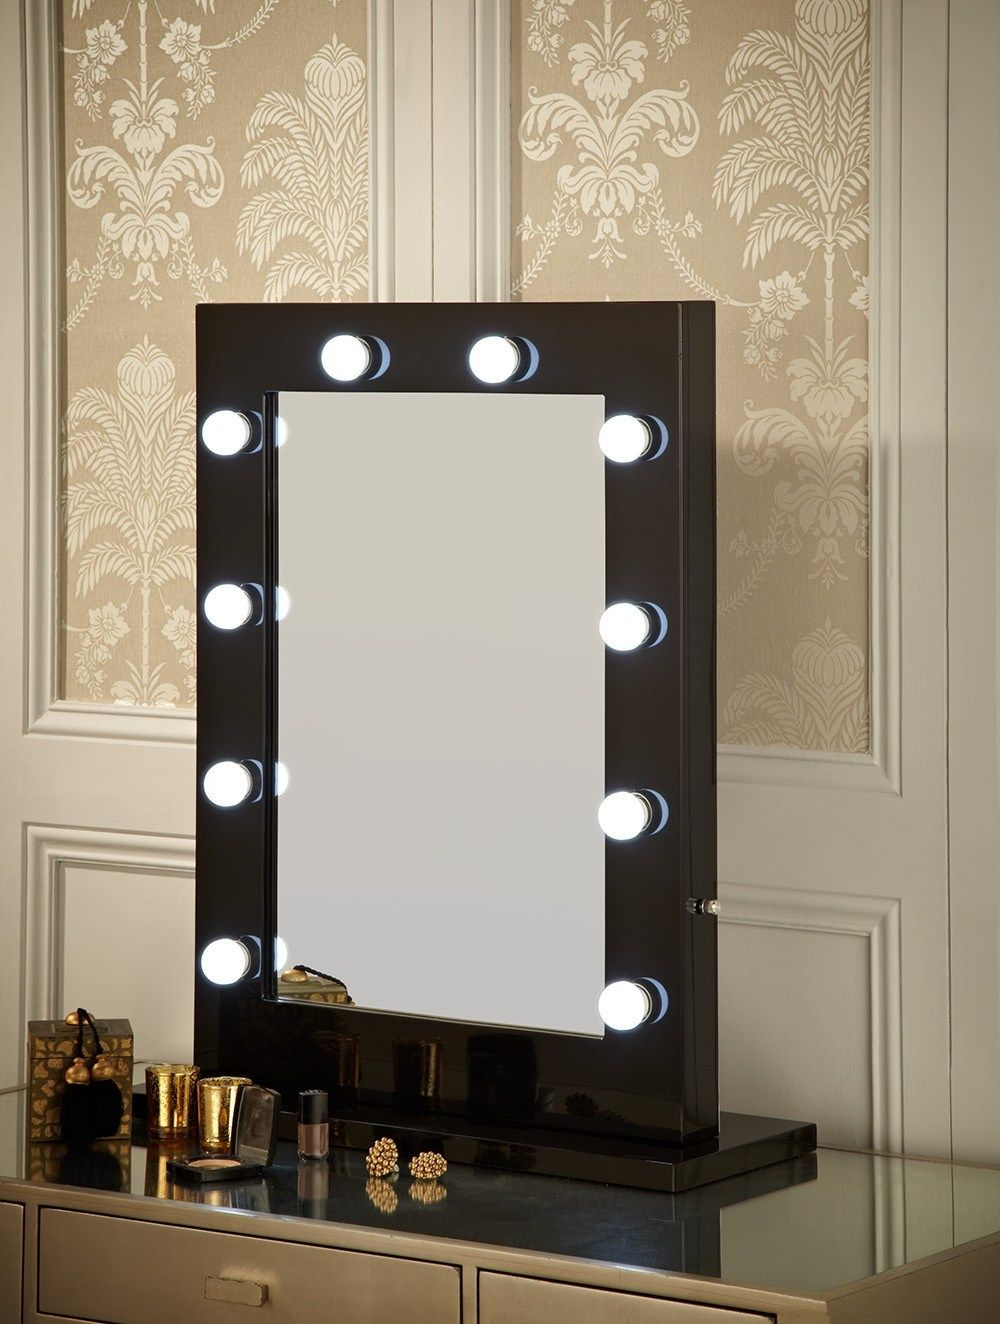 Dressing table lights around mirror dressing tables in